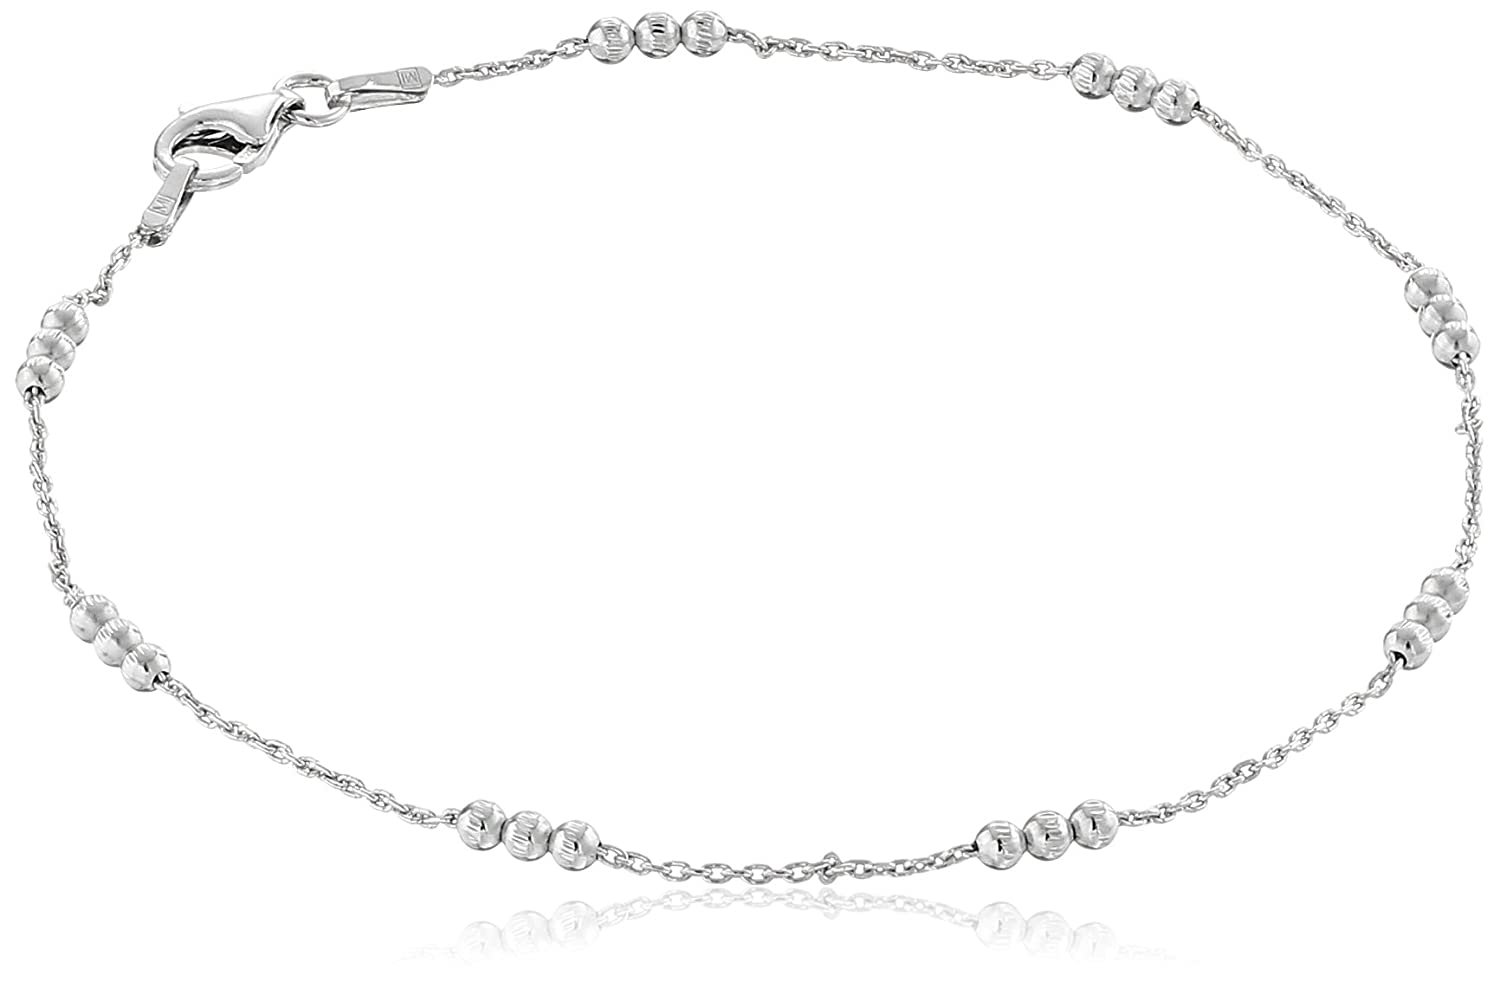 Sterling Silver Italian High Polished 3 Bead Station Anklet, 9 9 Amazon Collection FZ035PD2.53+3-9